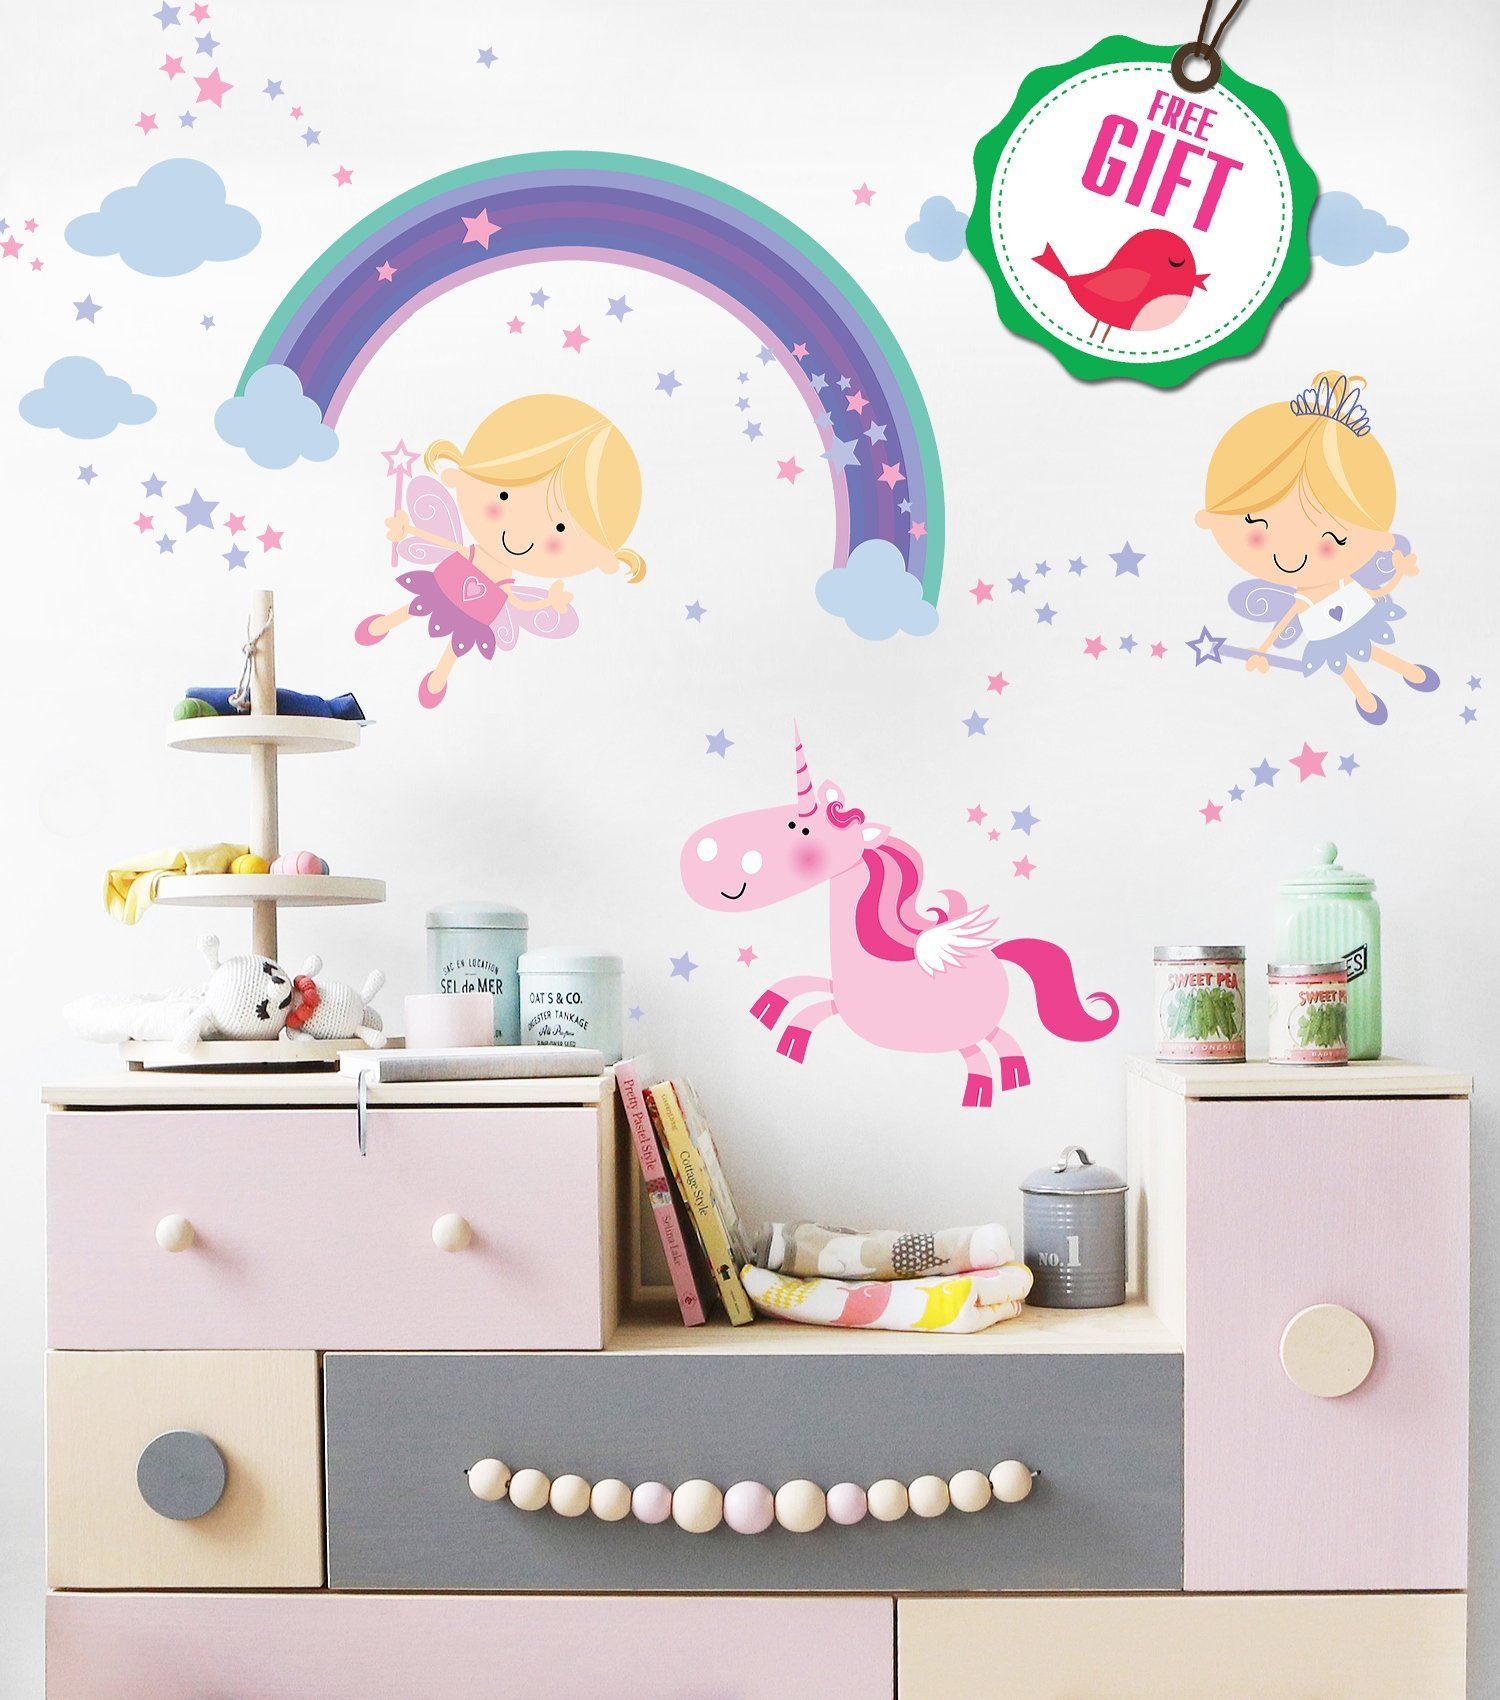 Fairy Unicorn Baby Girl Room Décor Stickers - Princess Playroom Wall Decals with Free Gift! 3